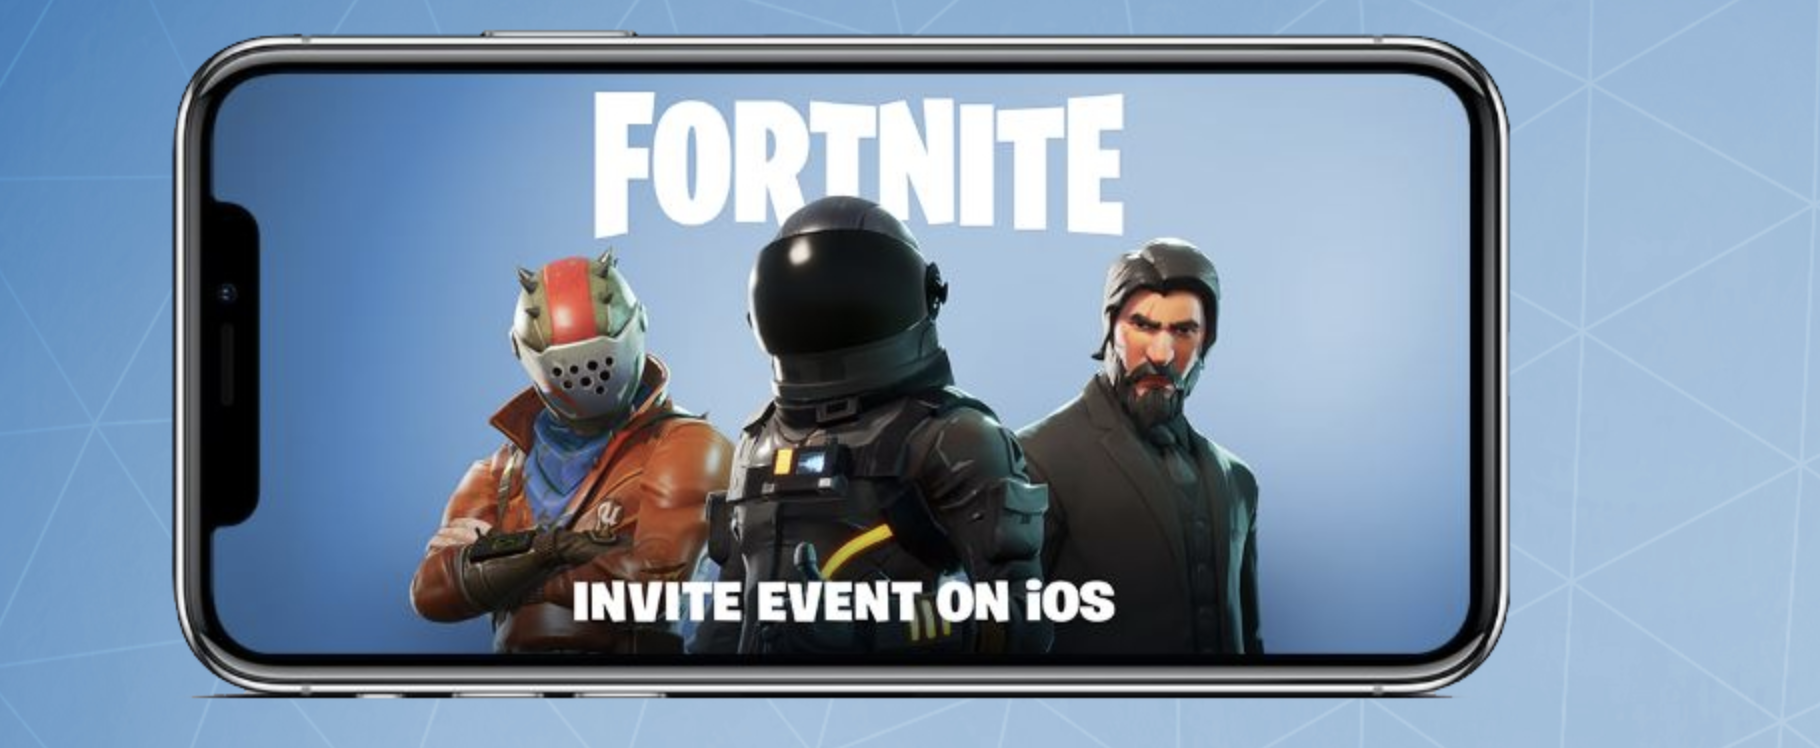 What Time Does 'Fortnite Mobile' Come Out? Mobile Invite ... - 1440 x 592 png 666kB